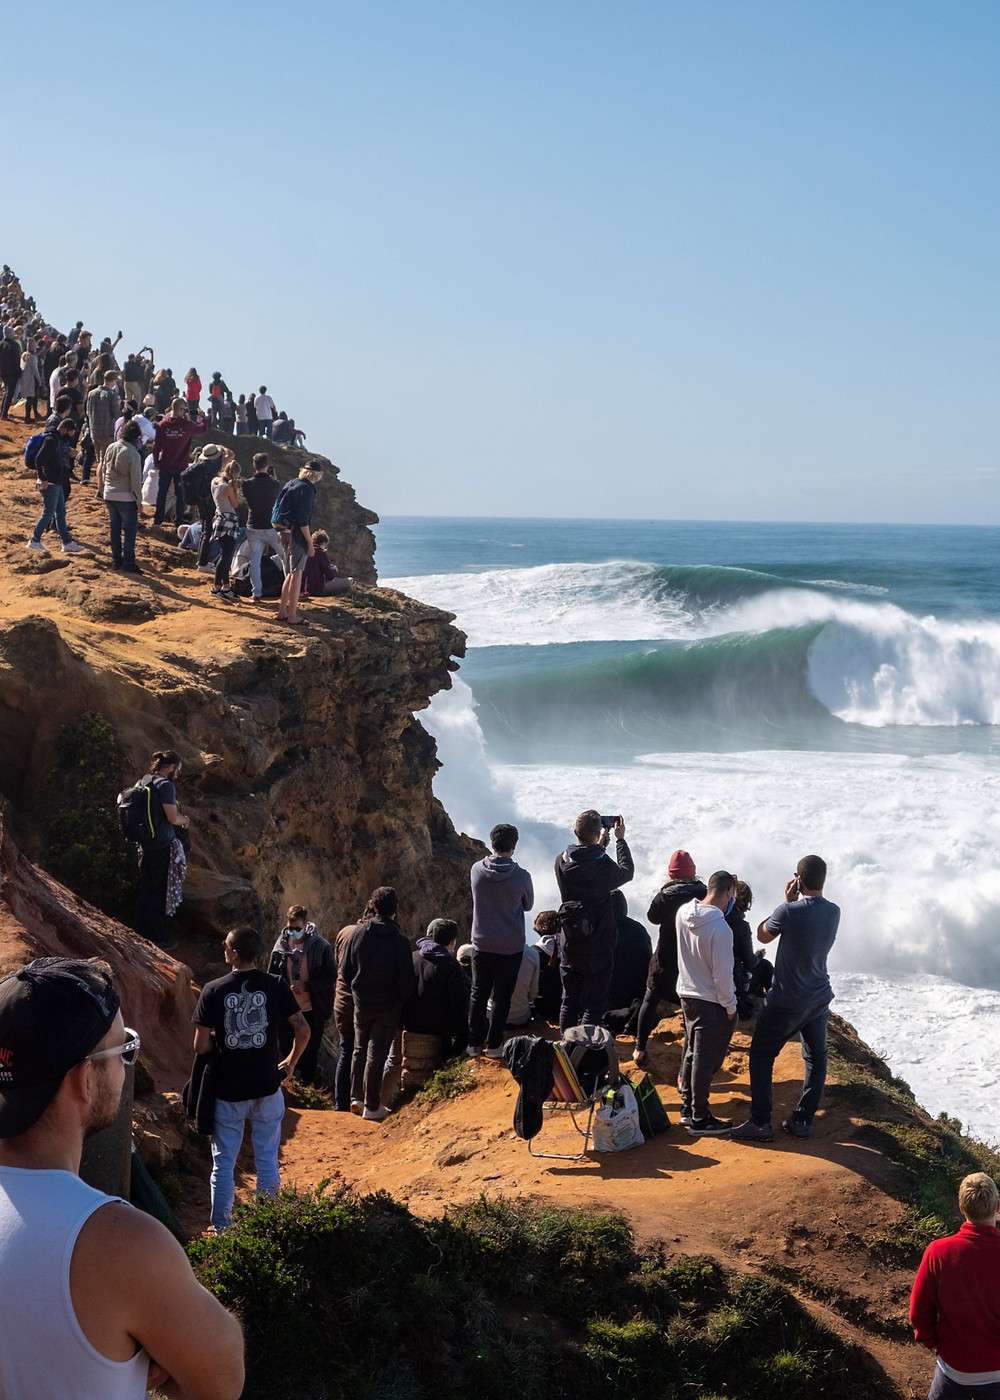 Thousands of people head to Praia do Norte every winter to see the giant waves of Nazaré